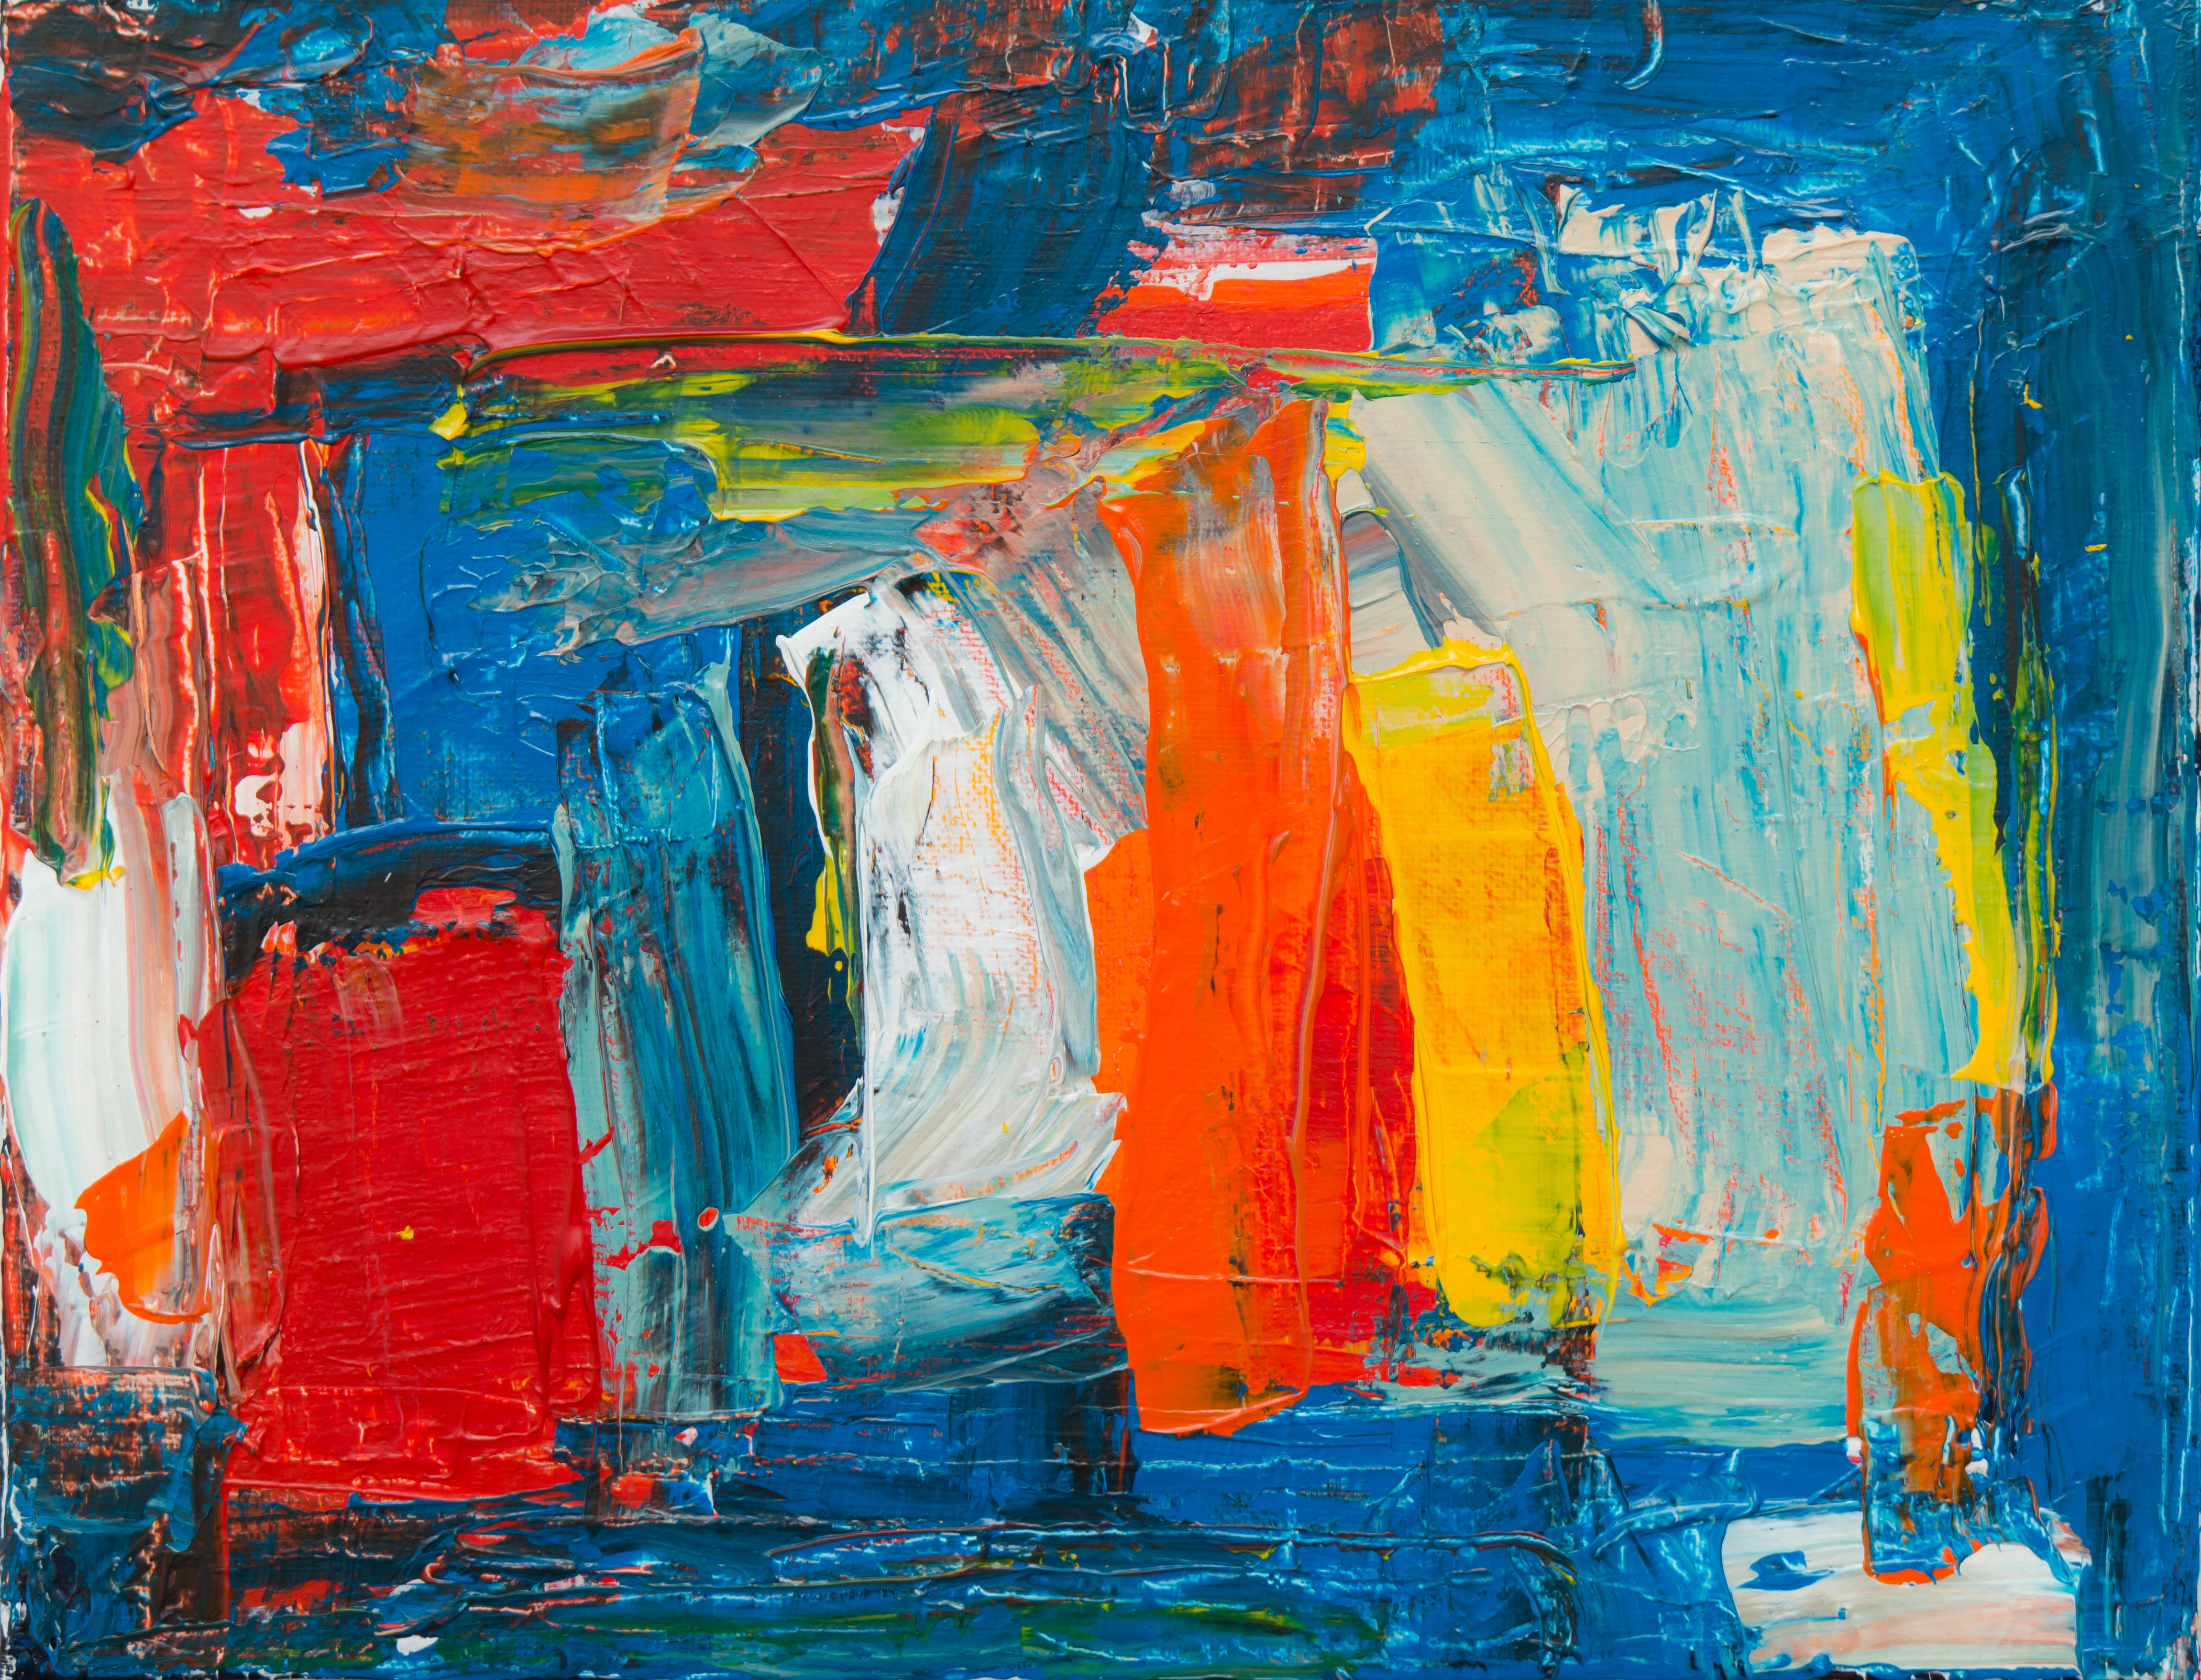 red, yellow, white, and blue abstract painting